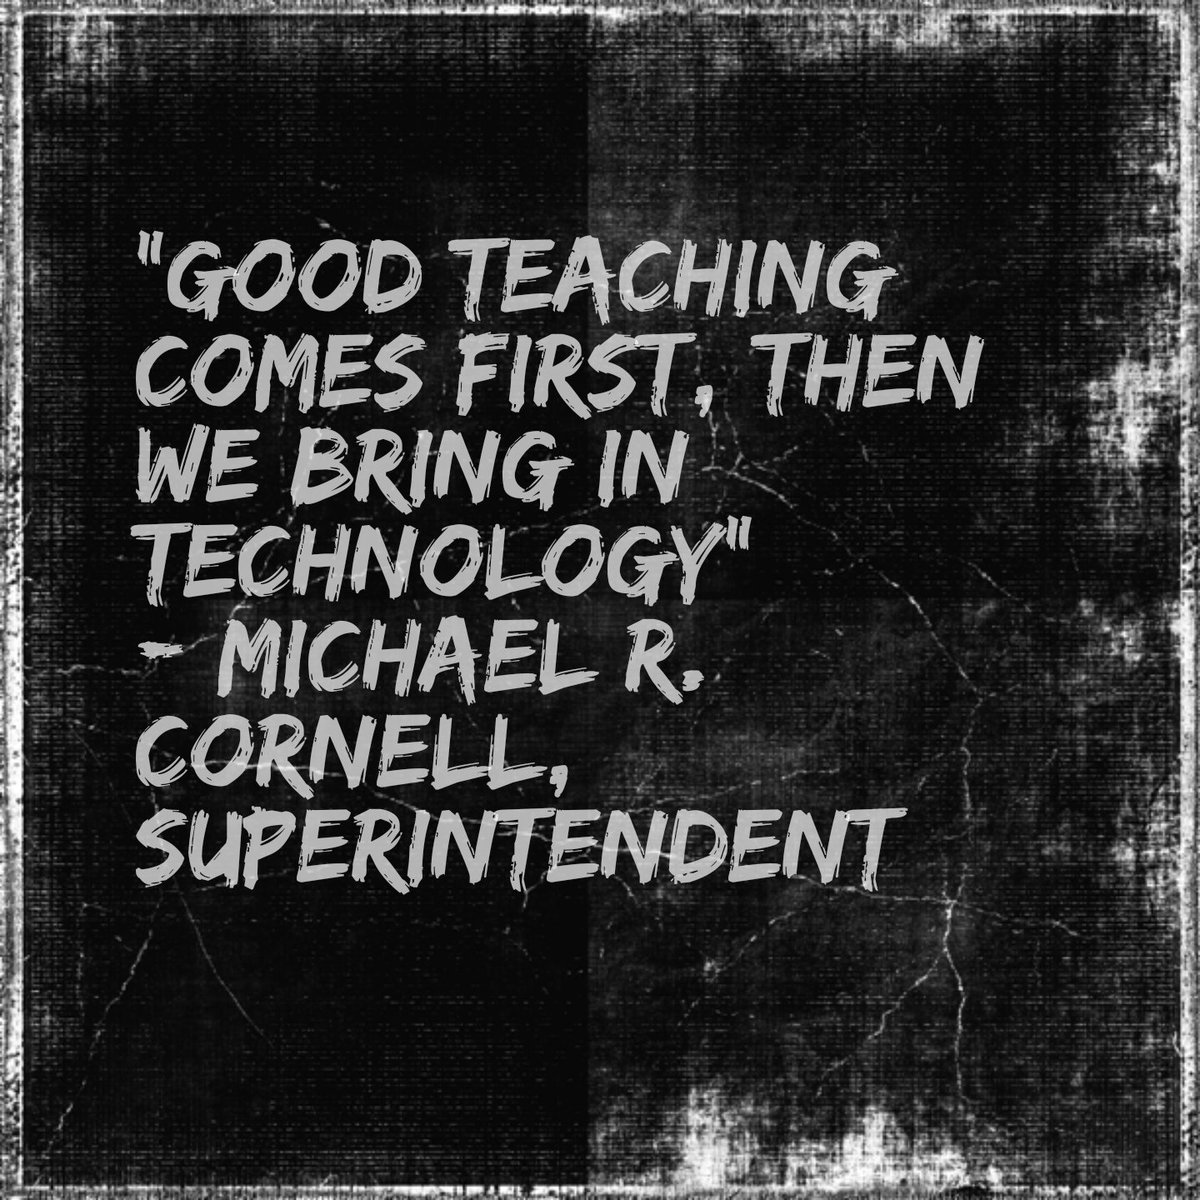 """Smart approach for EdTech. It's about the """"Ed"""" more than the """"Tech"""". #edtech #googleclassroom https://t.co/IwQHqmWS4N"""